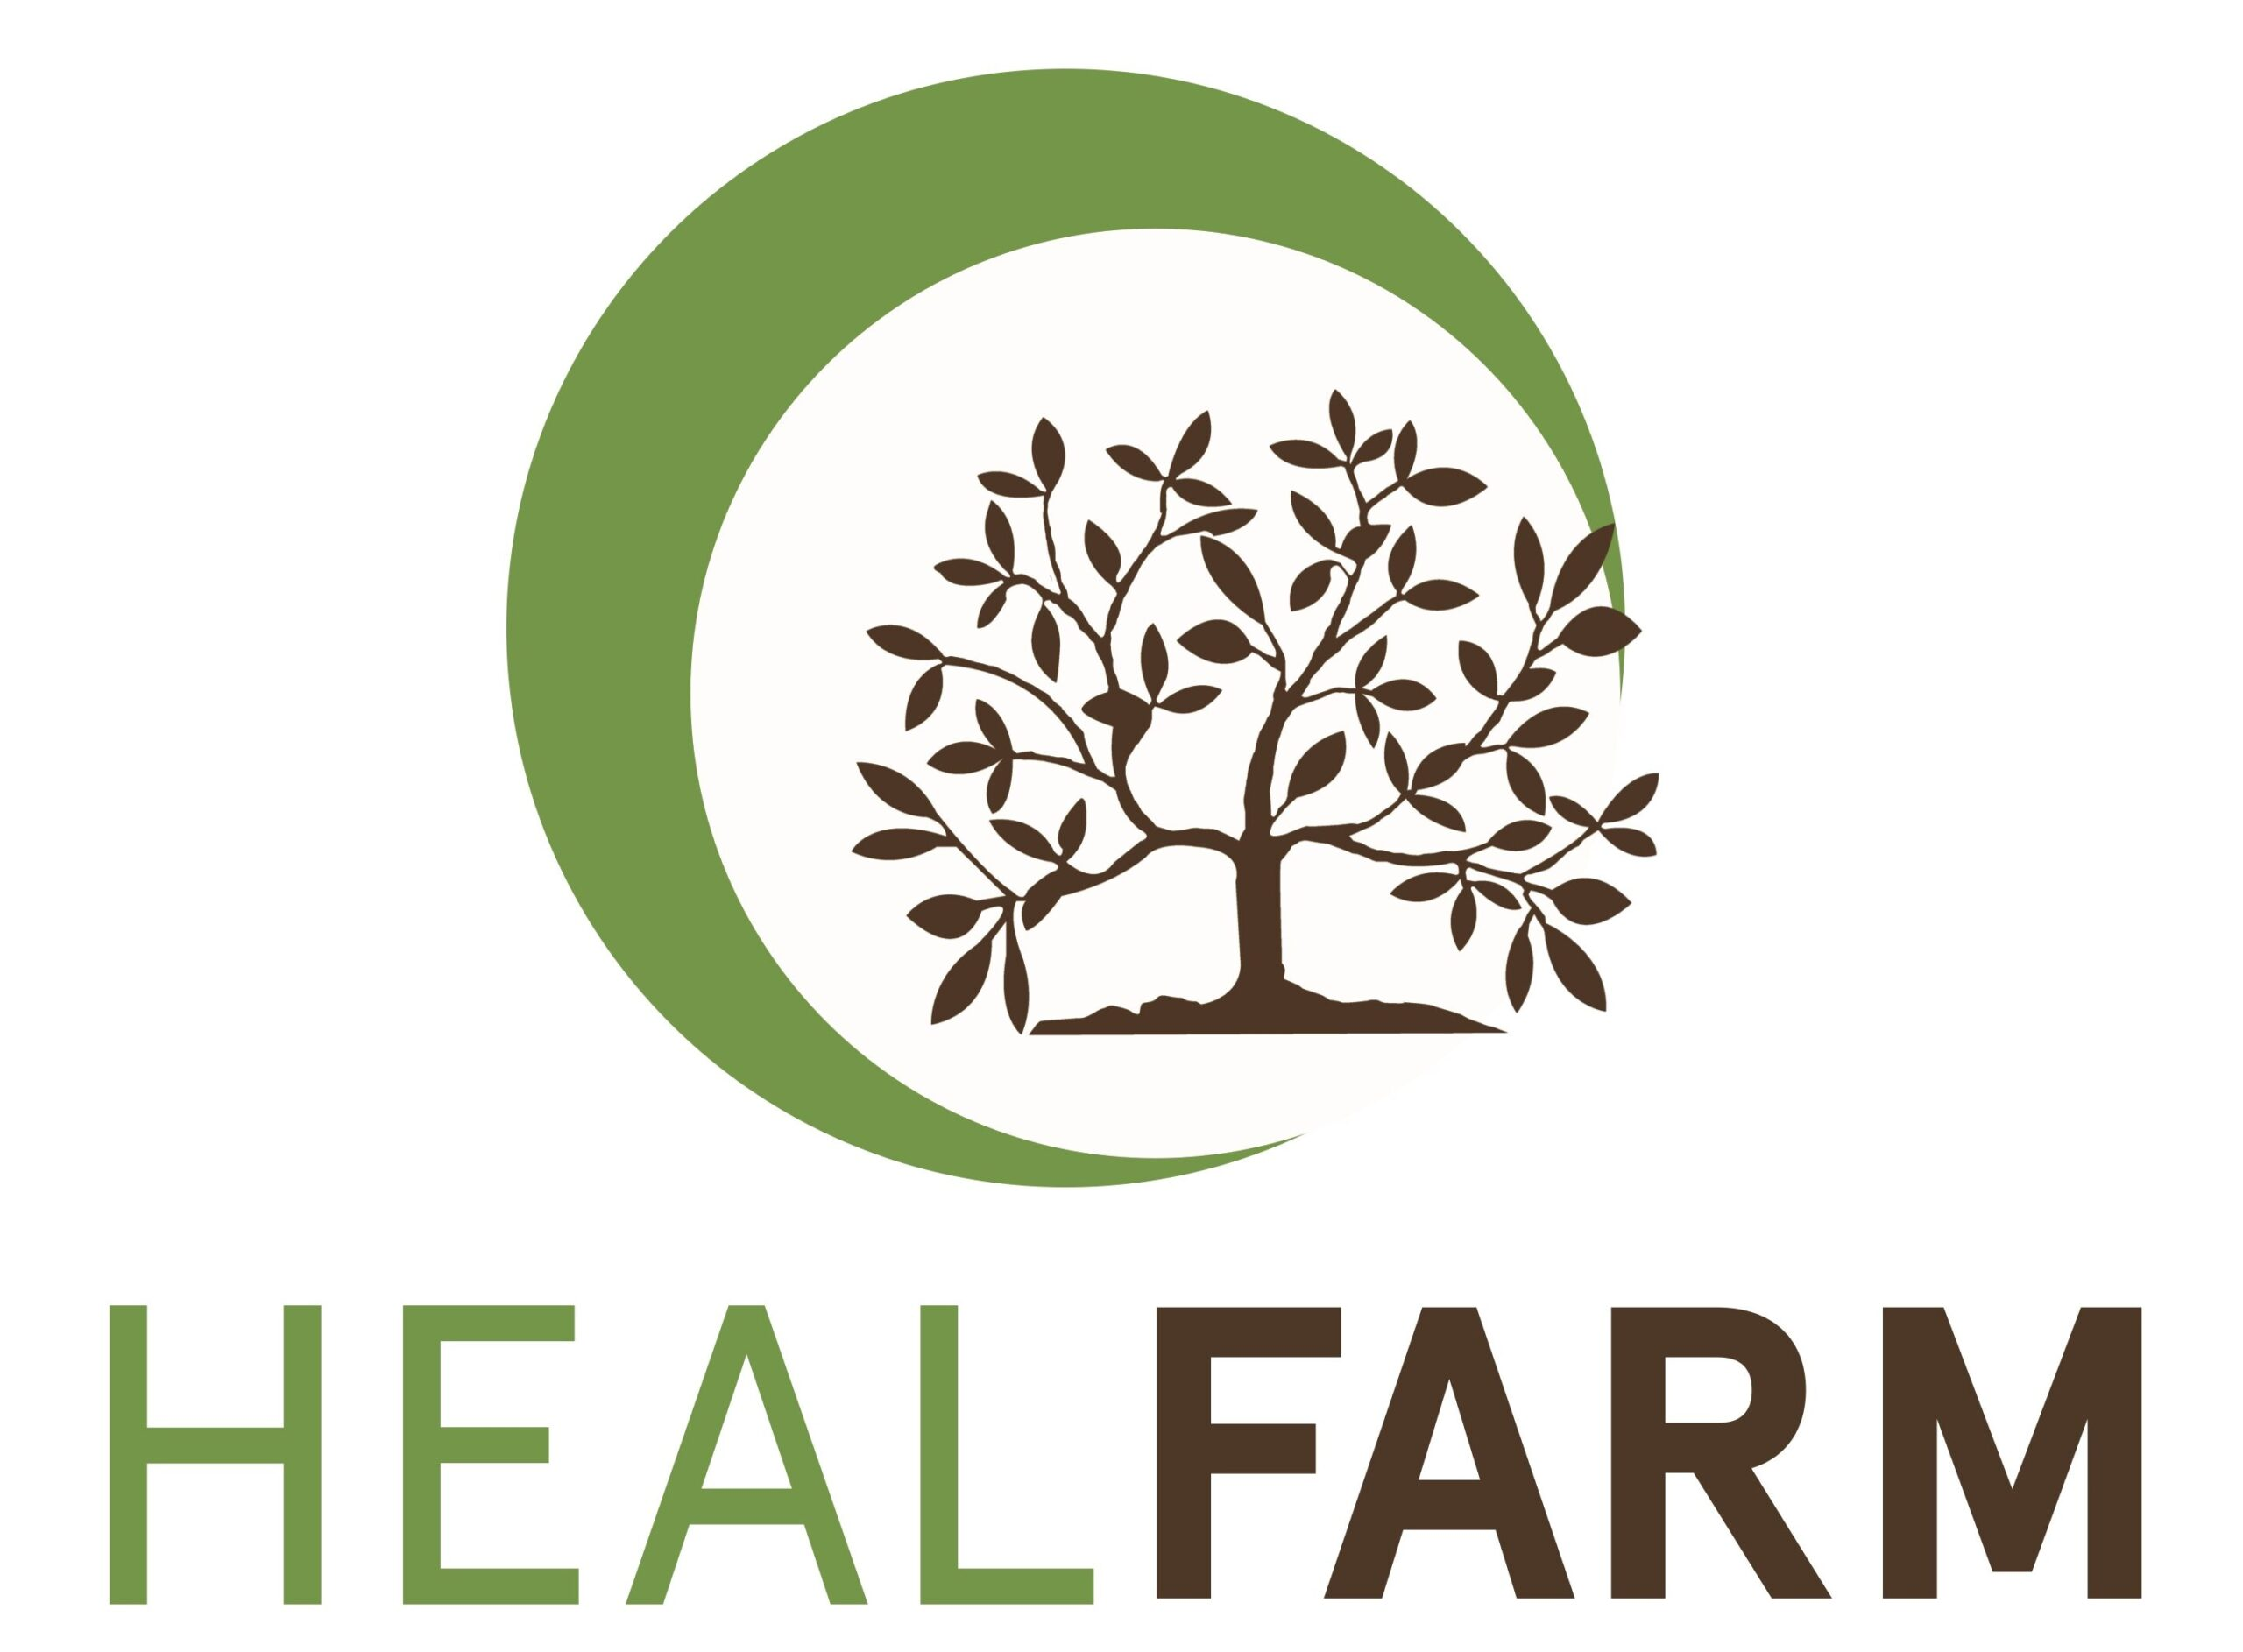 HEAL FARM - HIMALAYAN ECO ALTERNATIVE LIFESTYLE FOR AGRICULTURE RECREATION and Meditation